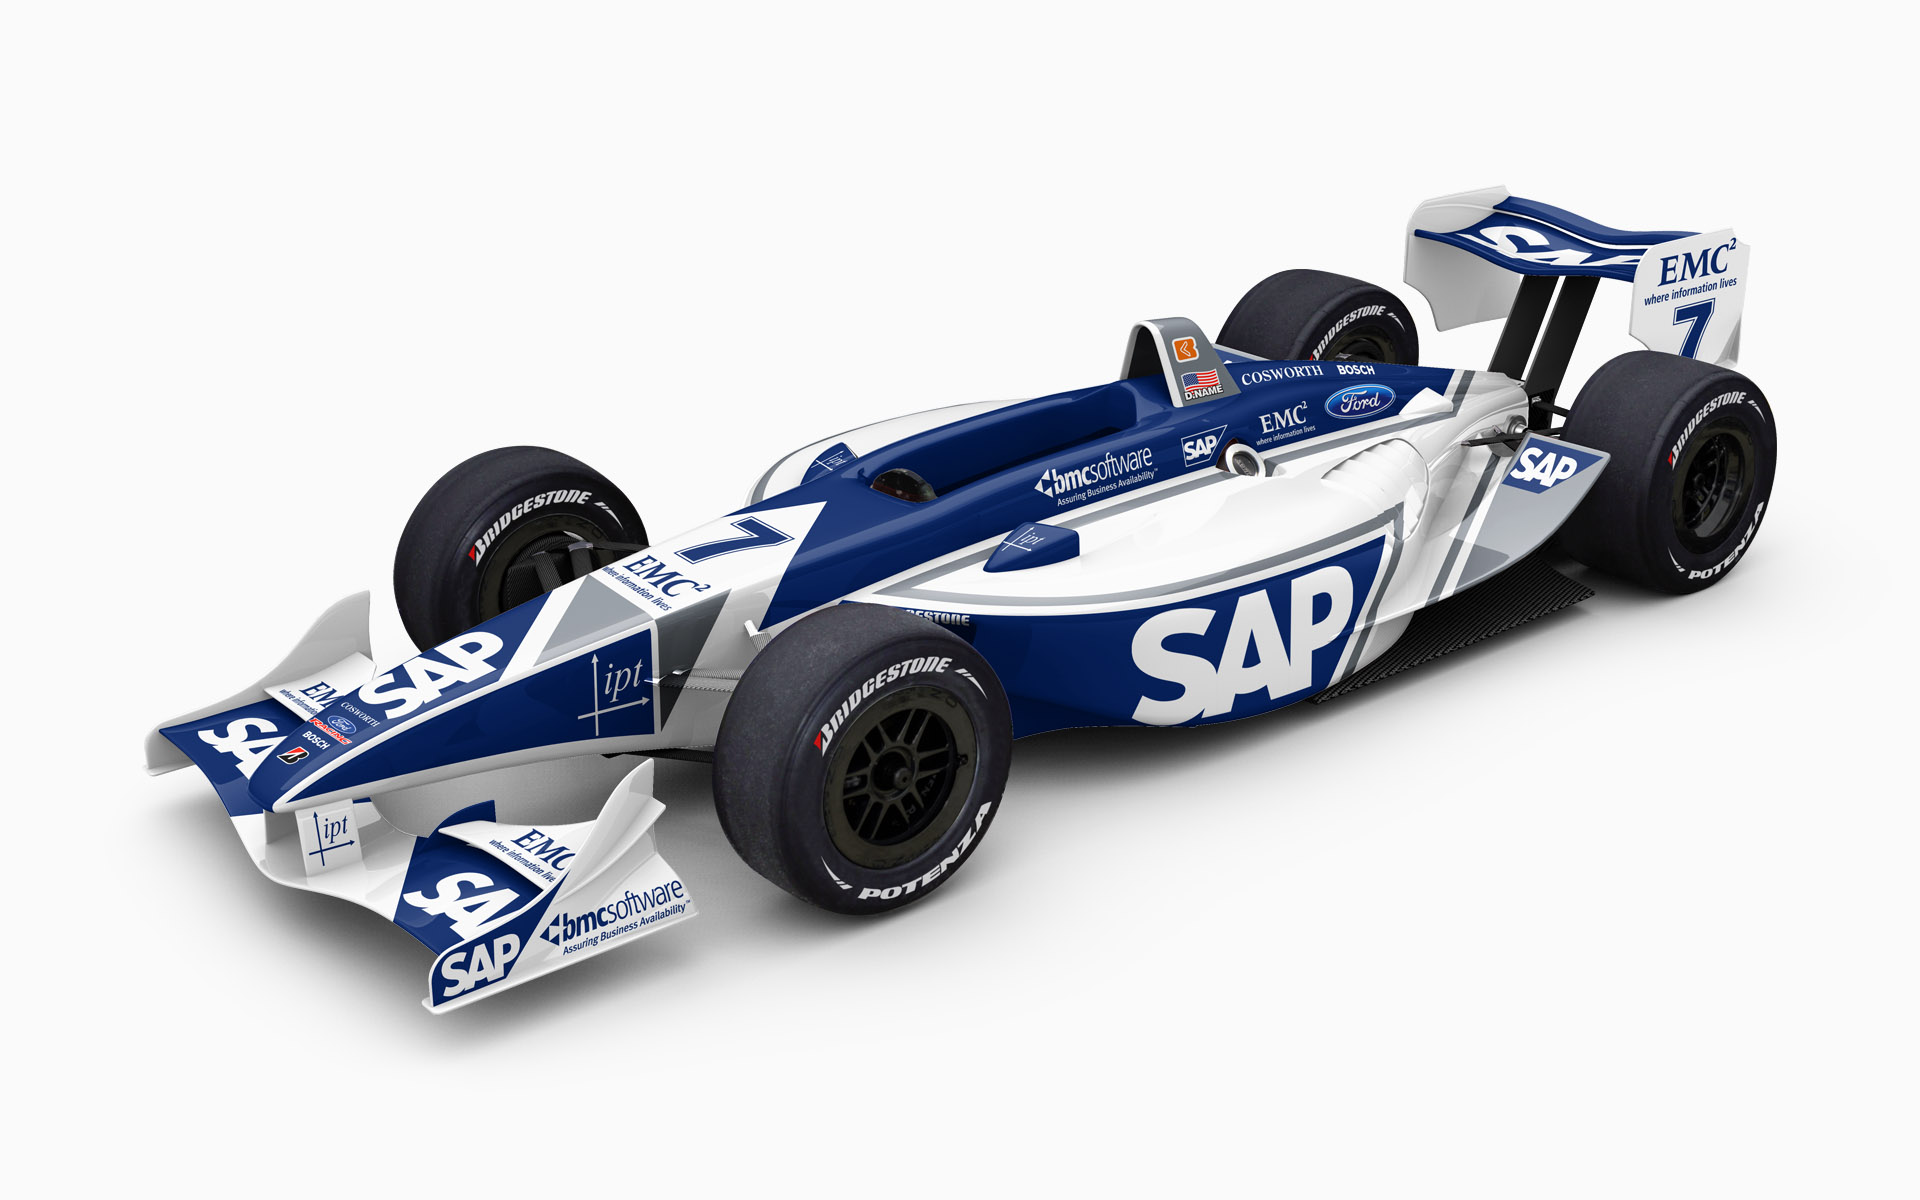 2007 IPT SAP Panoz DP01 Ford Champ Car Livery Visualization